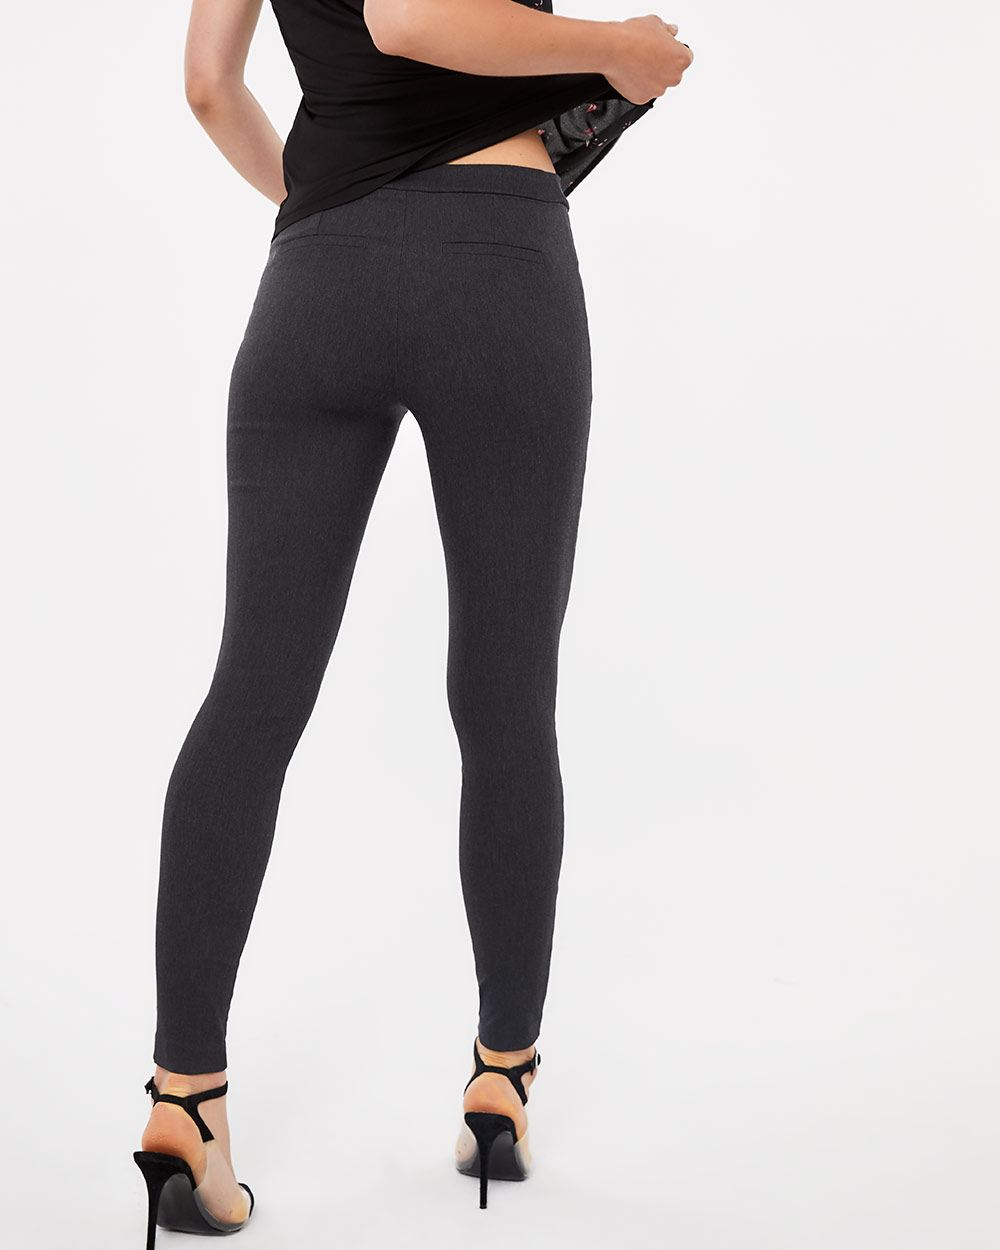 The Tall Iconic Grey Melange Leggings